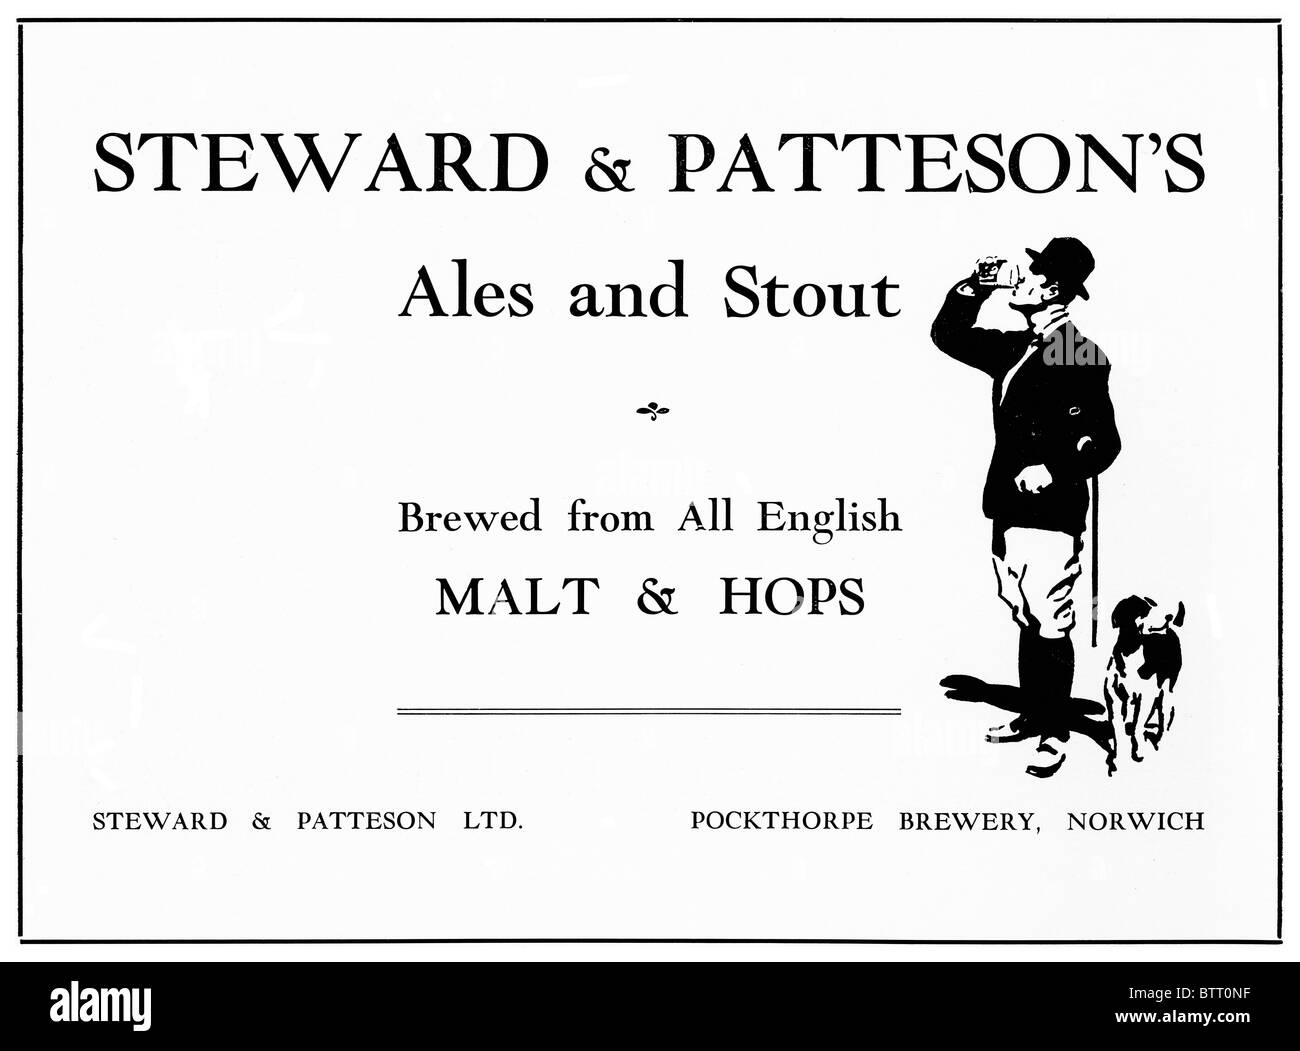 Norwich Beer, 1930s advert for ales and stout from brewers Steward & Patteson, taken over by Bullards 1963 and - Stock Image